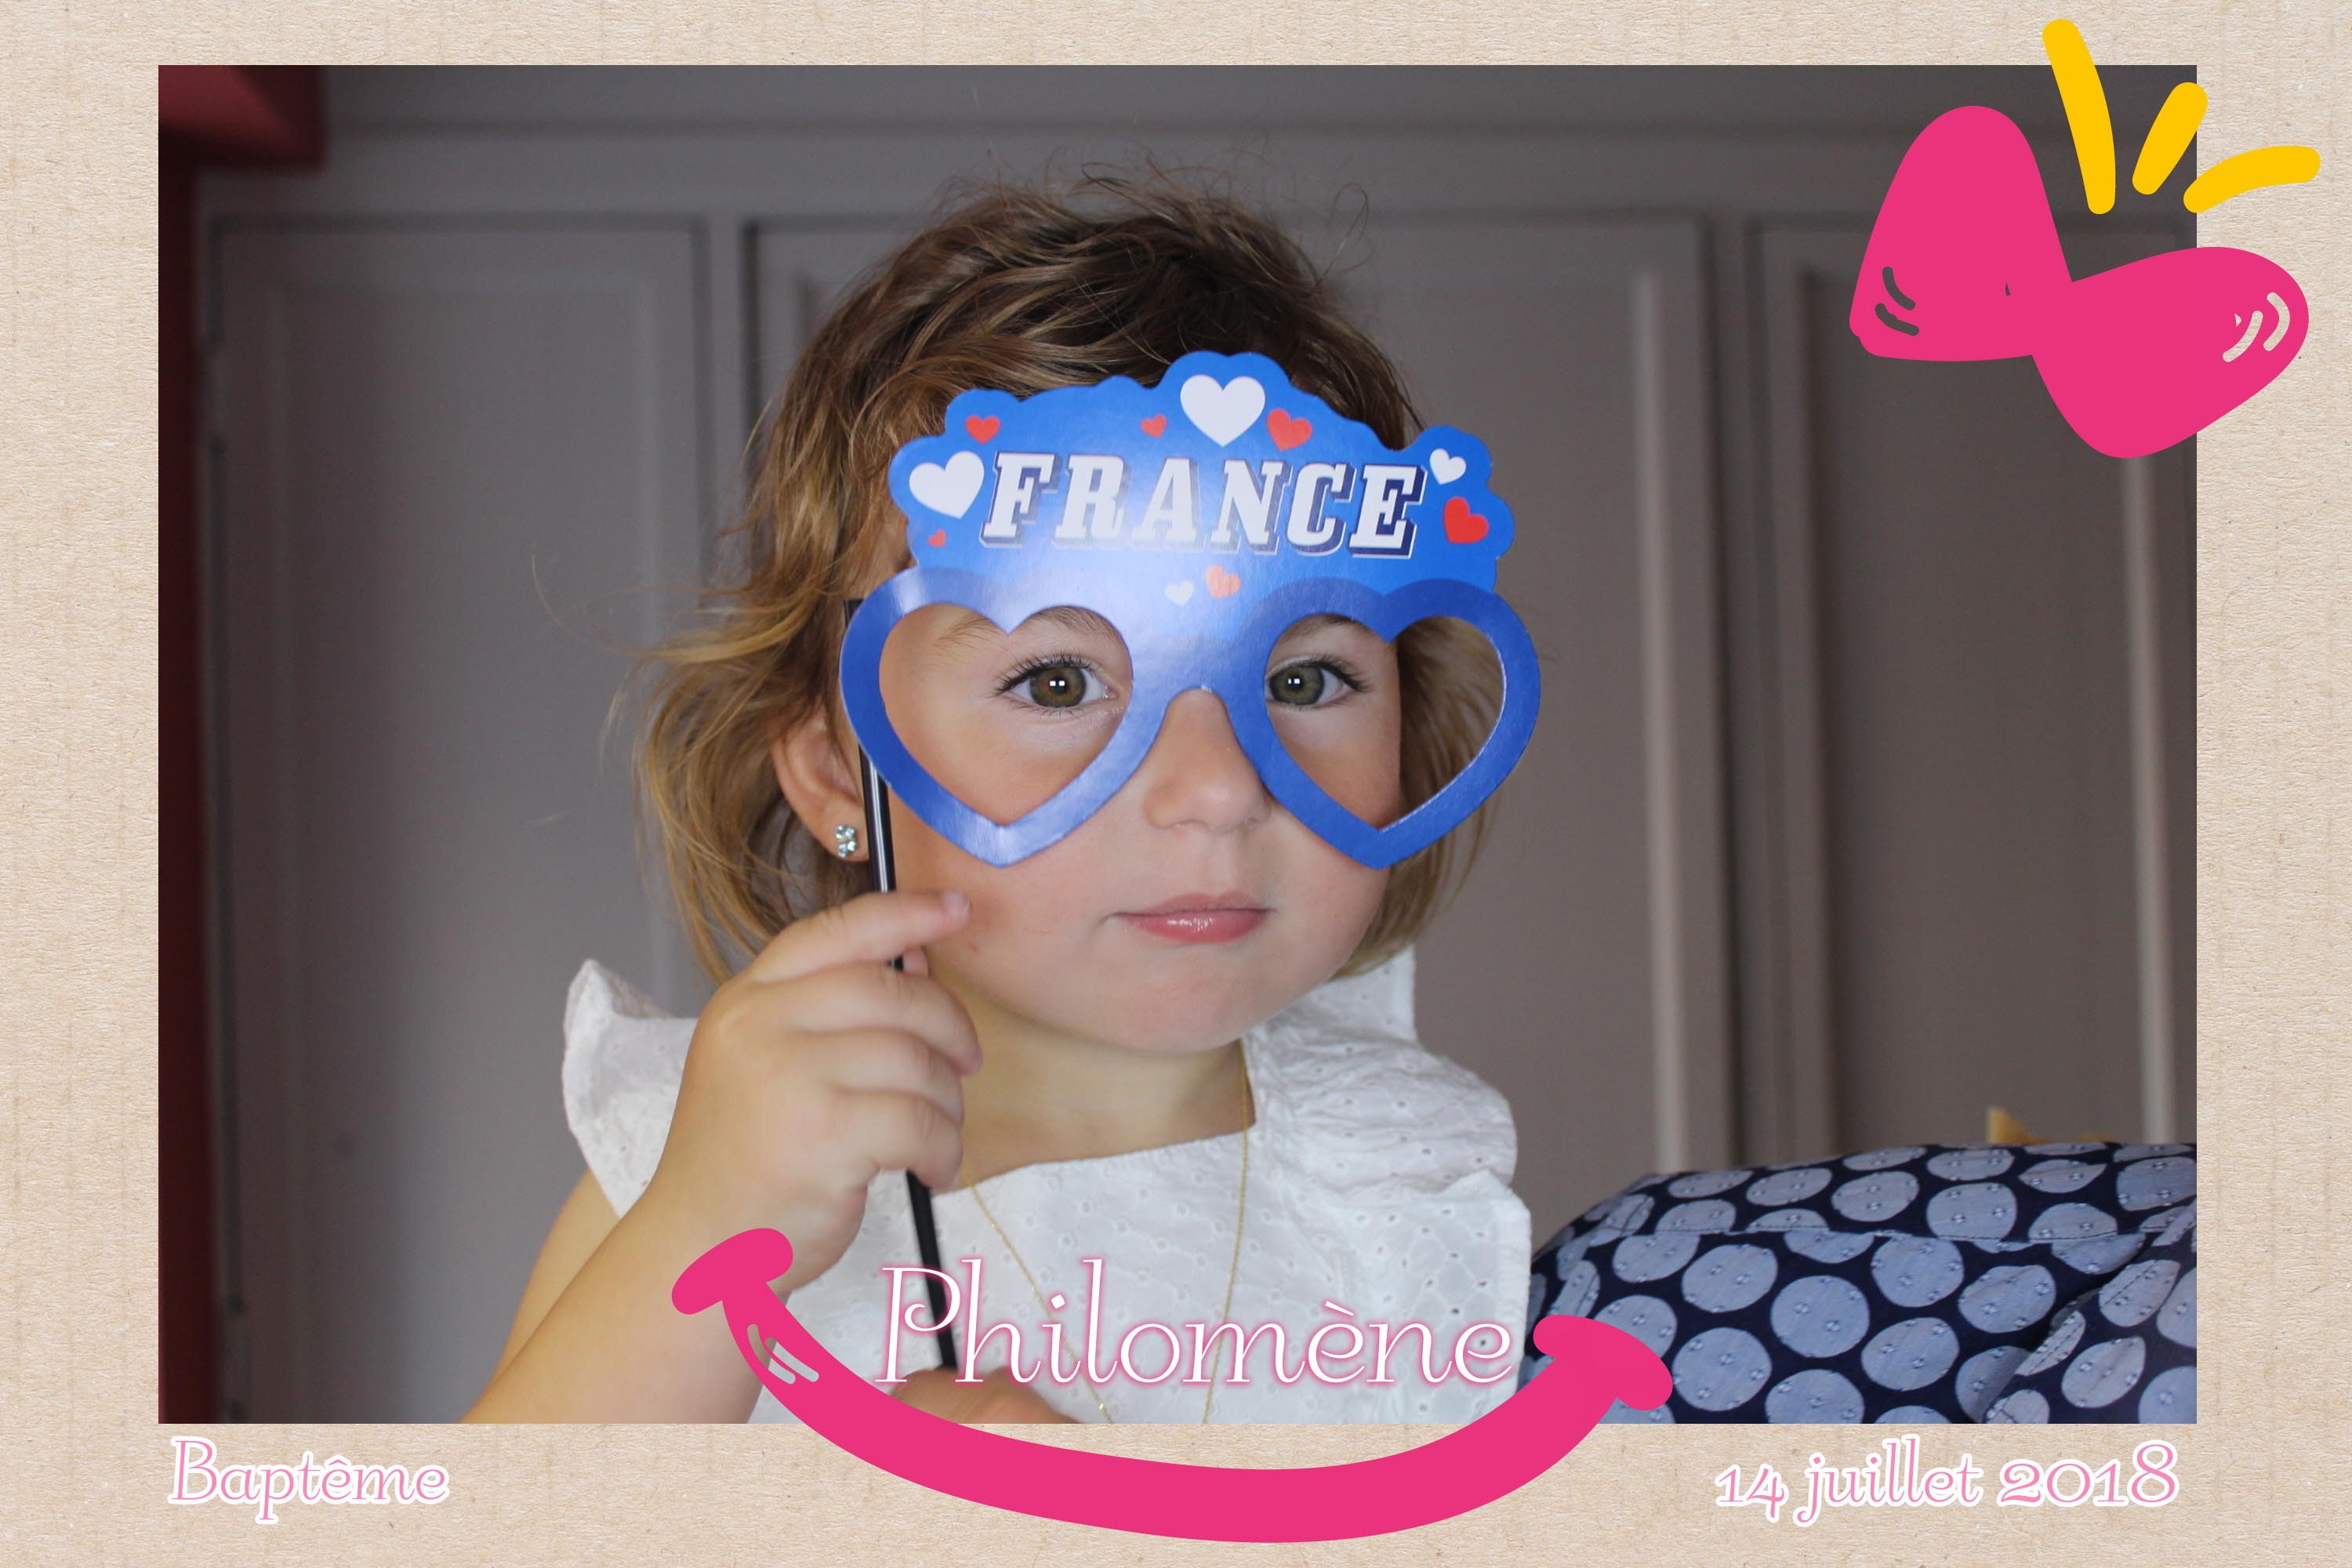 location borne photo selfie photobooth baptême harcourt le neubourg brionne eure normandie le bec hellouin evenement